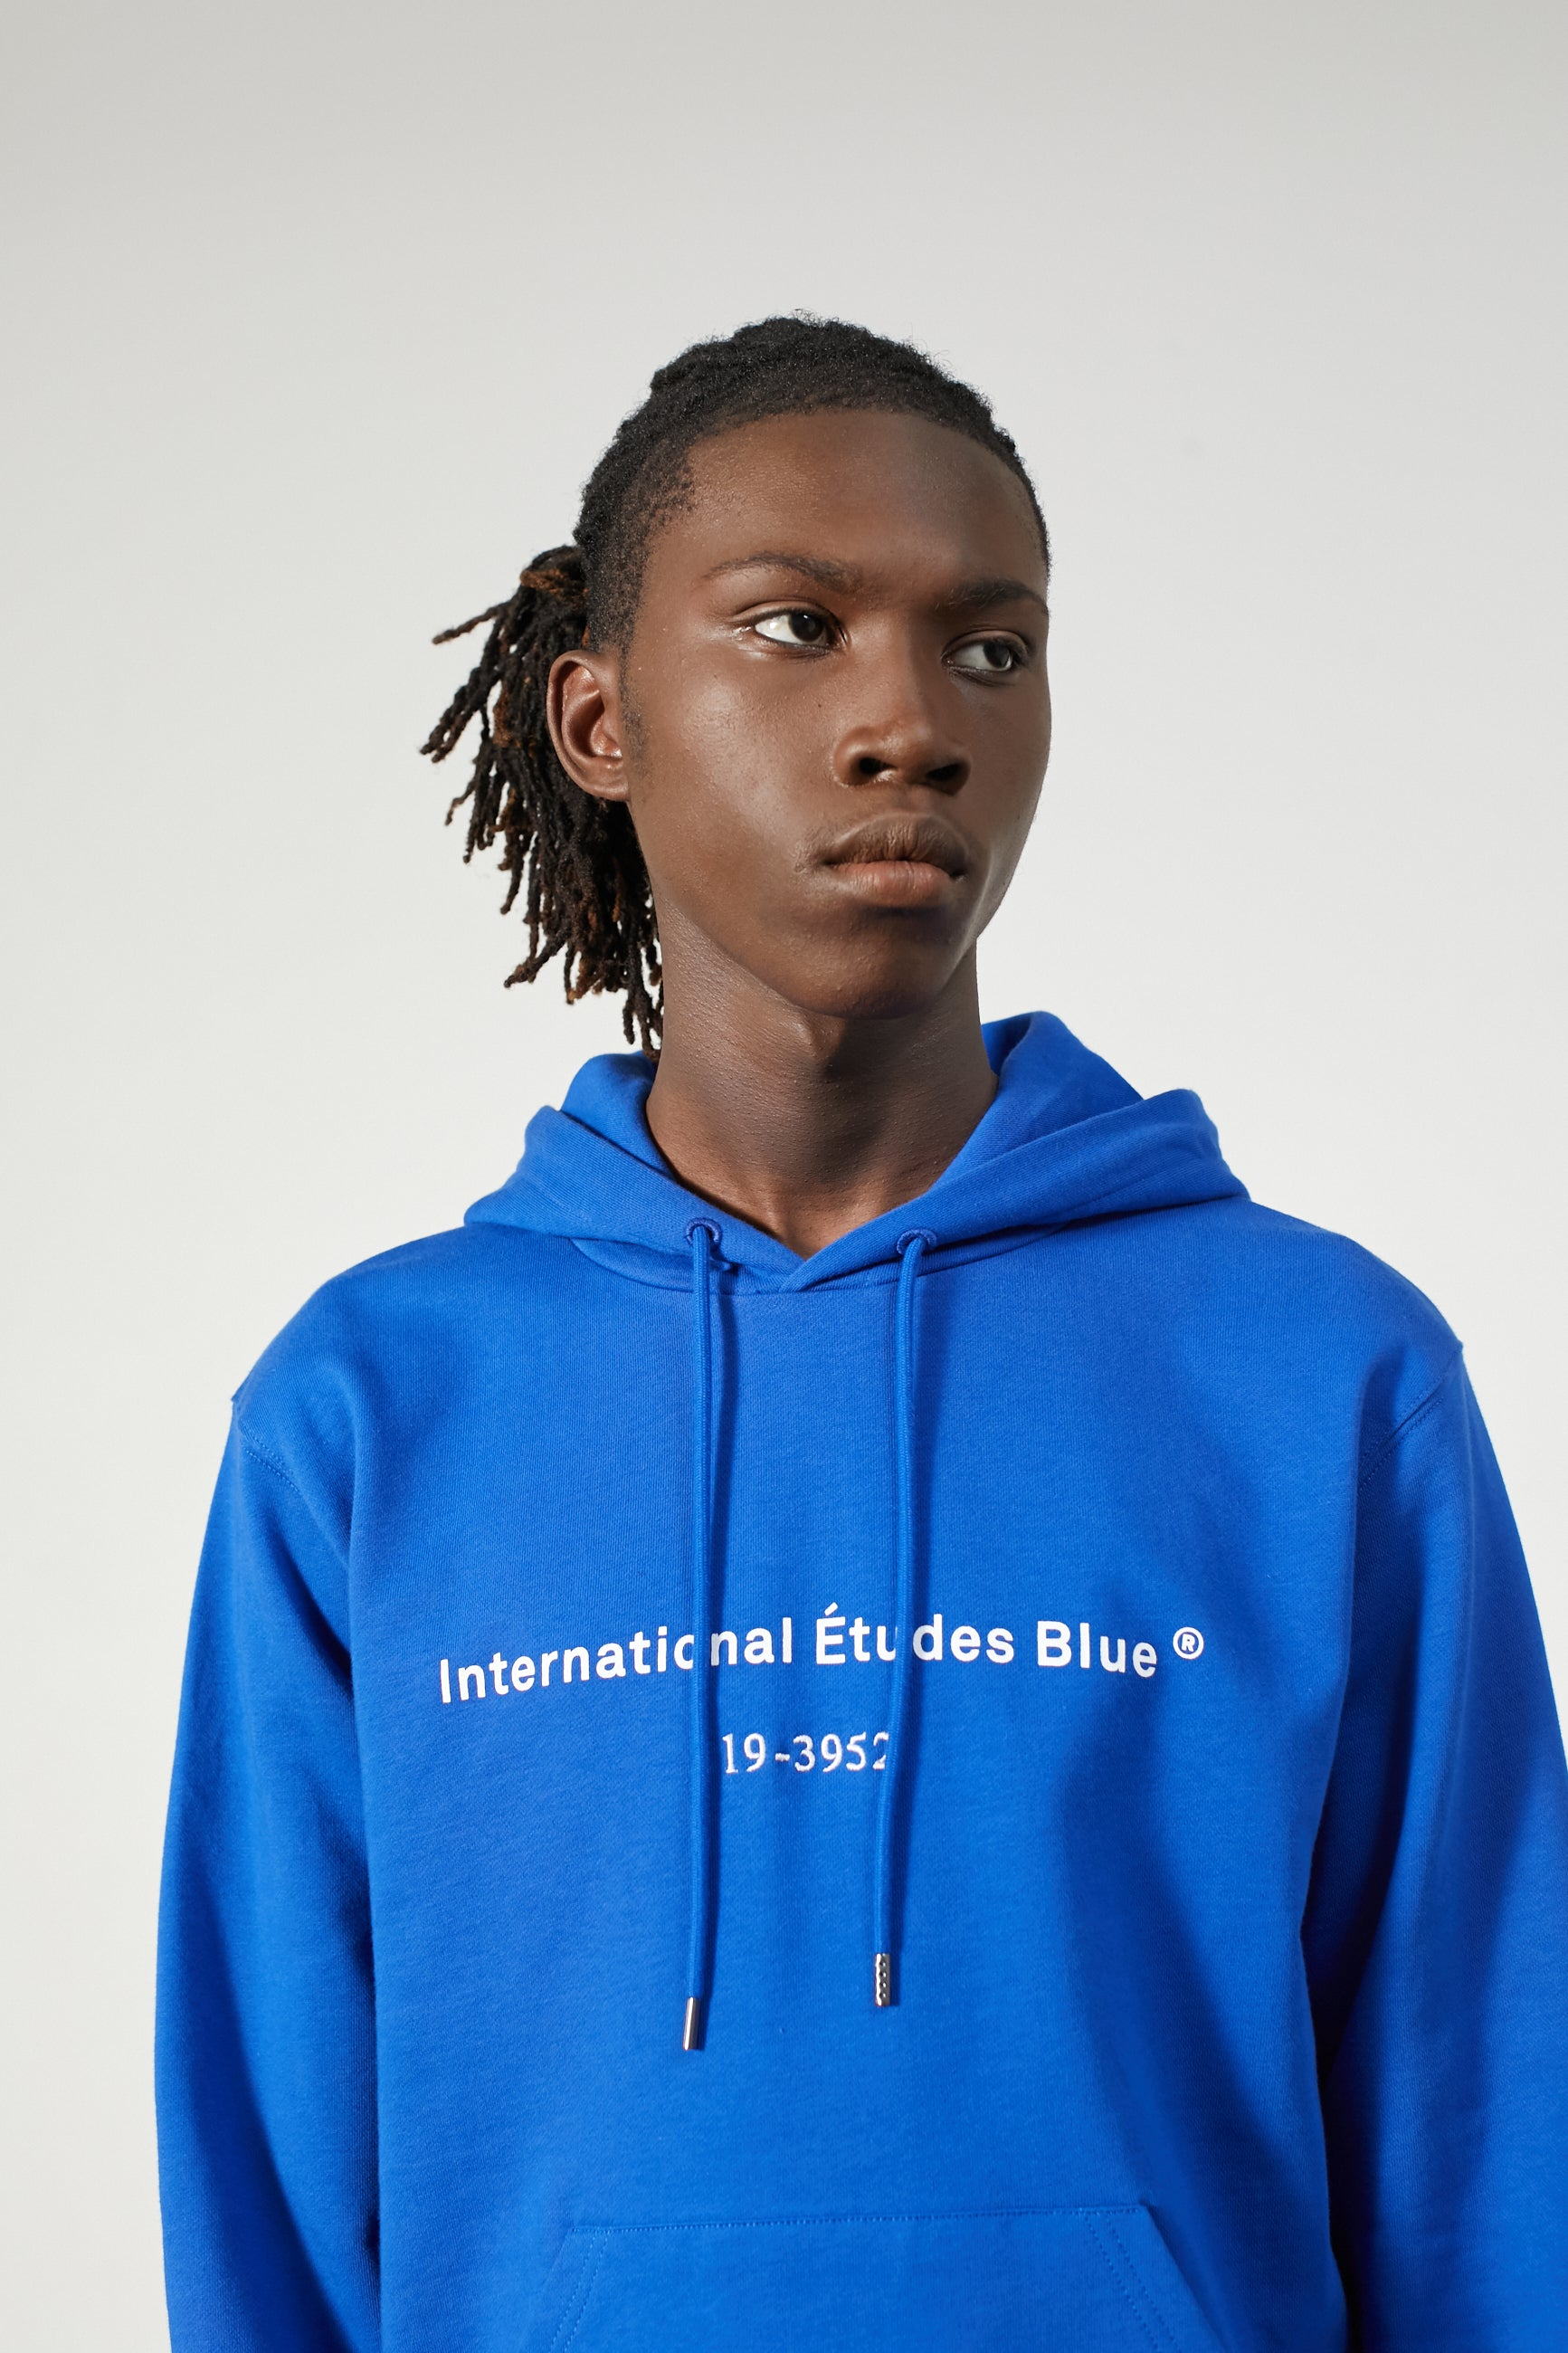 KLEIN INTERNATIONAL BLUE